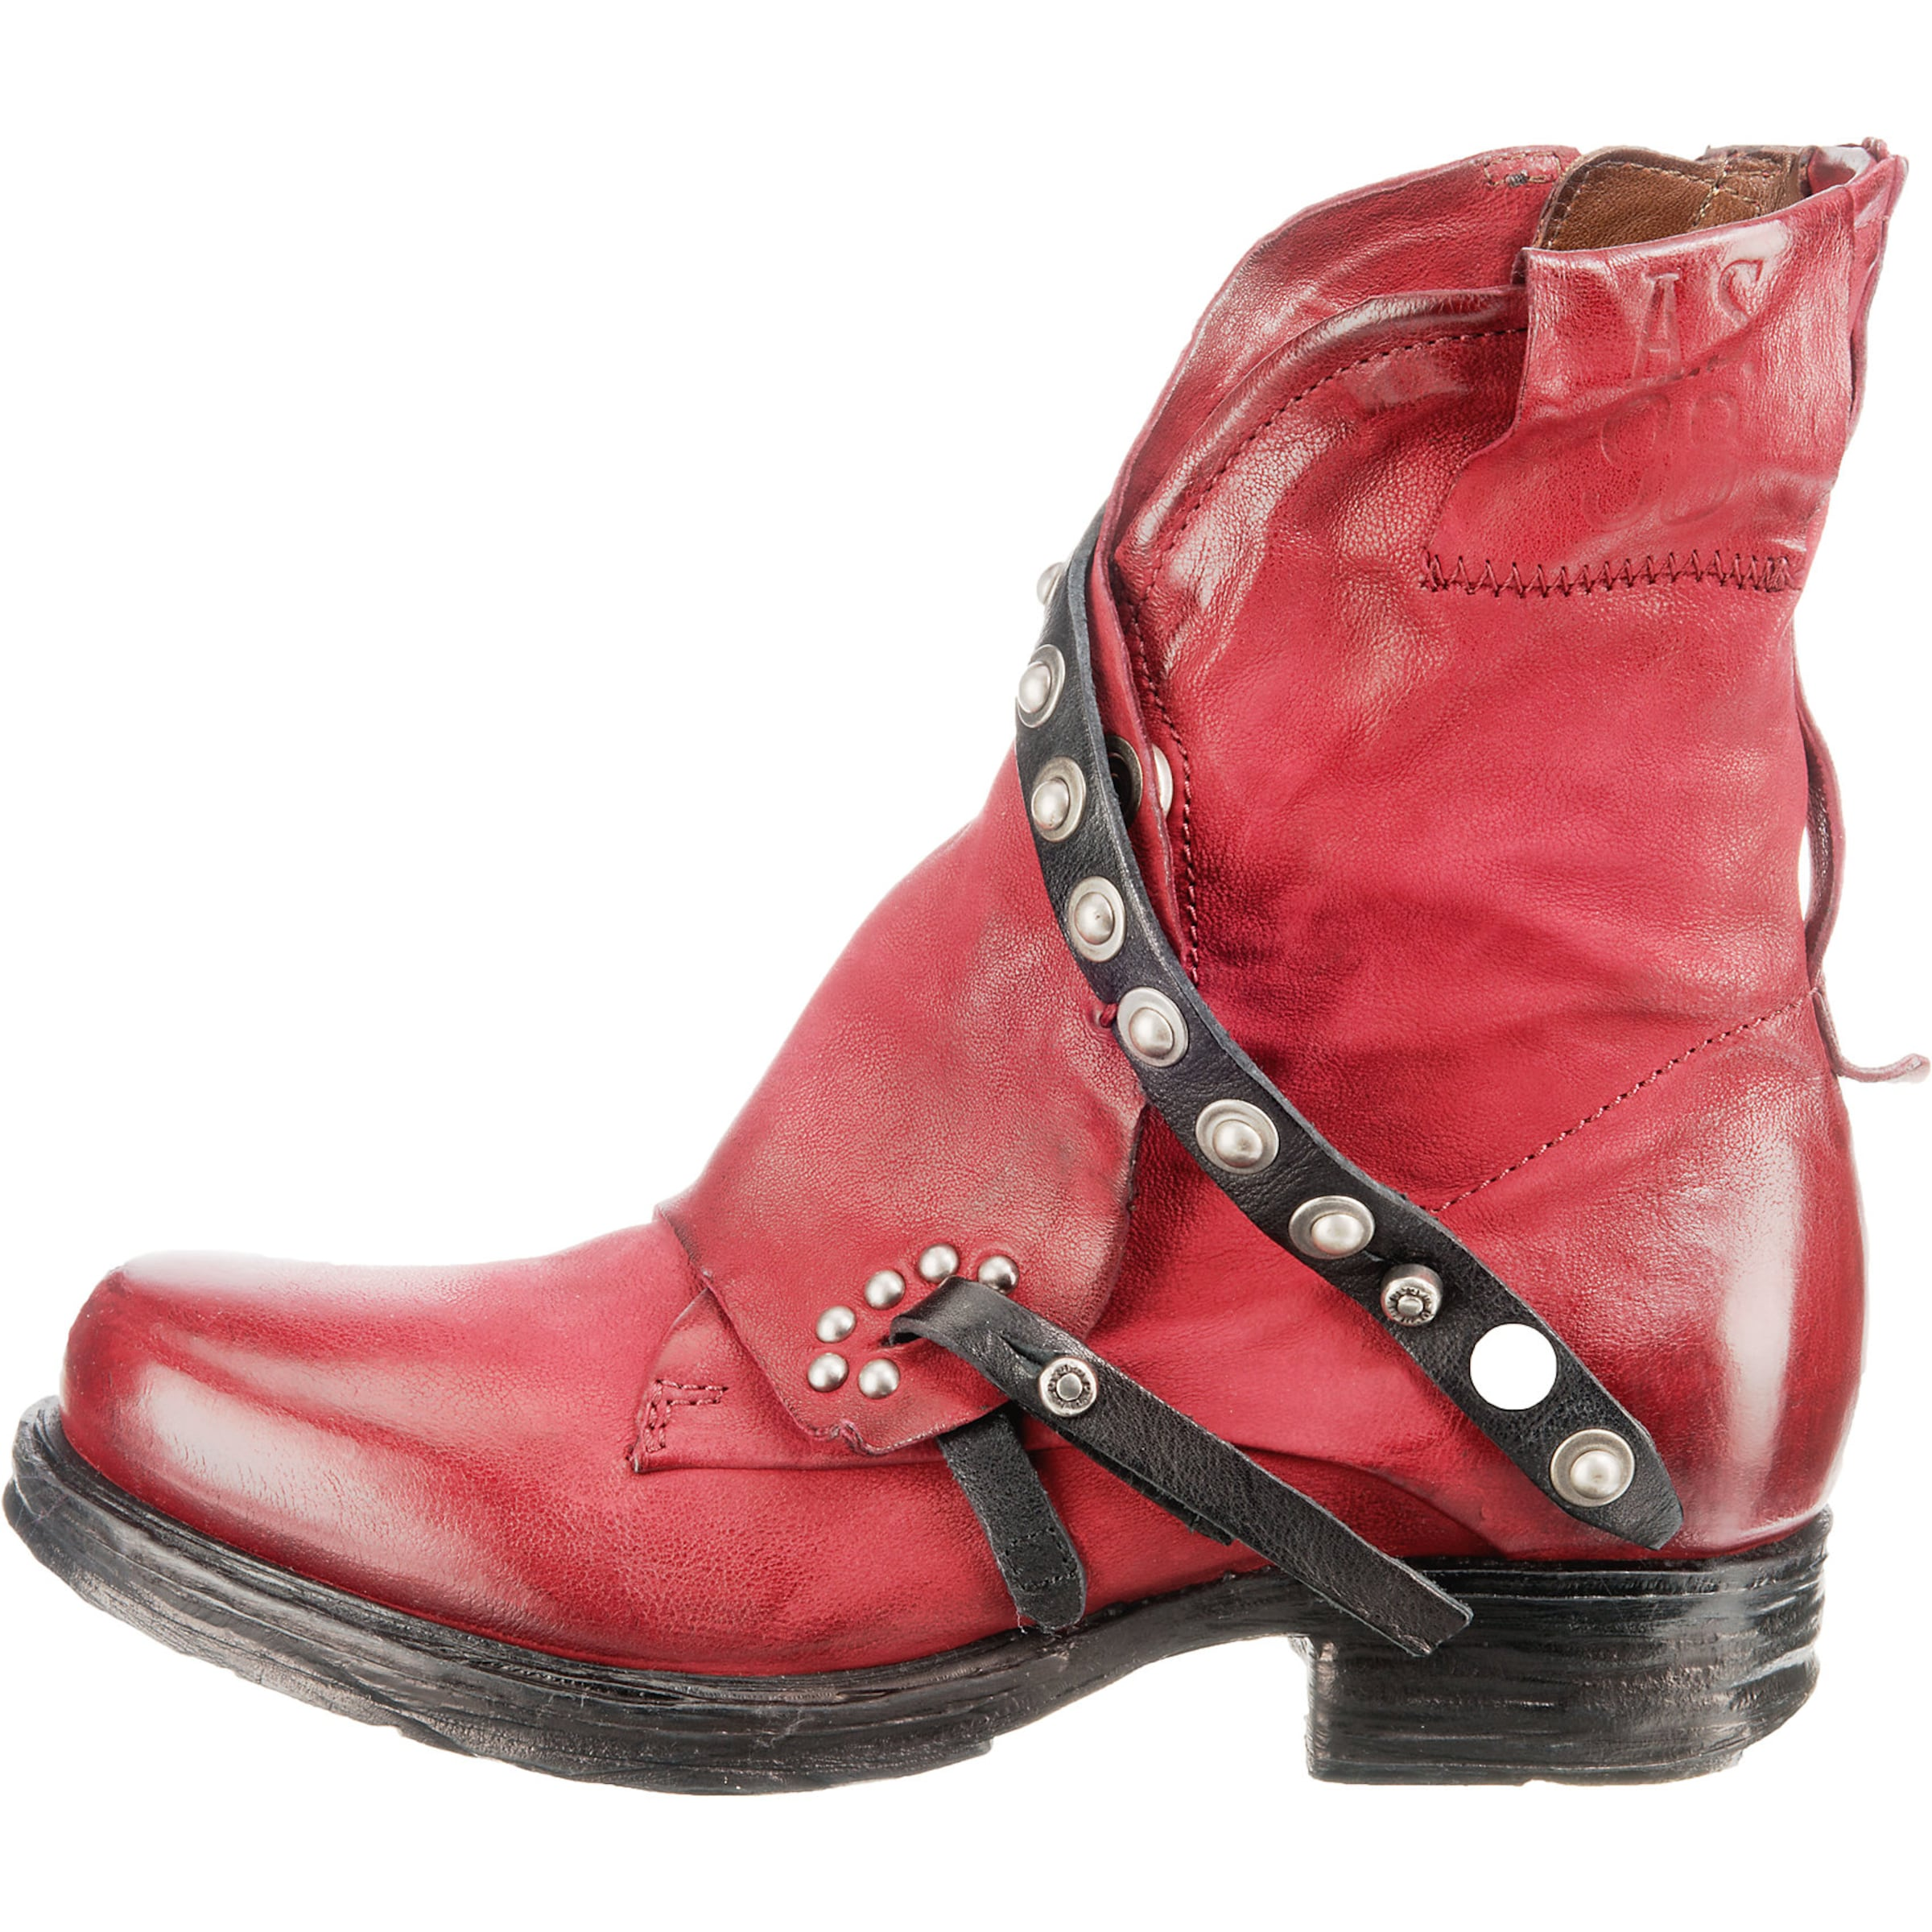 Boots 98 Pastellrot A s In 6Ybvfg7y